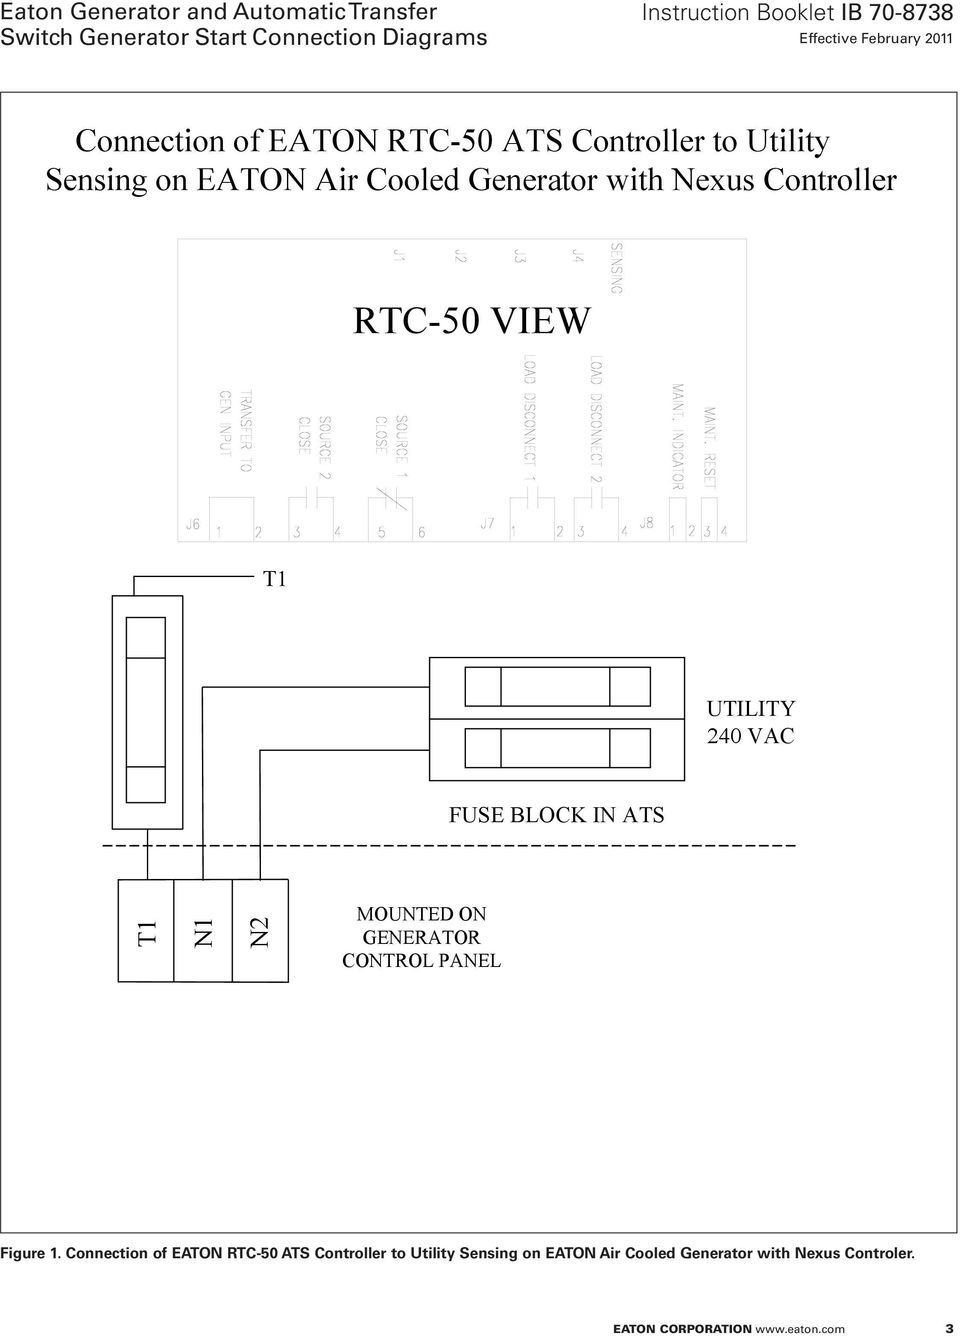 hight resolution of in ats n1 n2 mounted on generator control panel diagram 1 figure 1